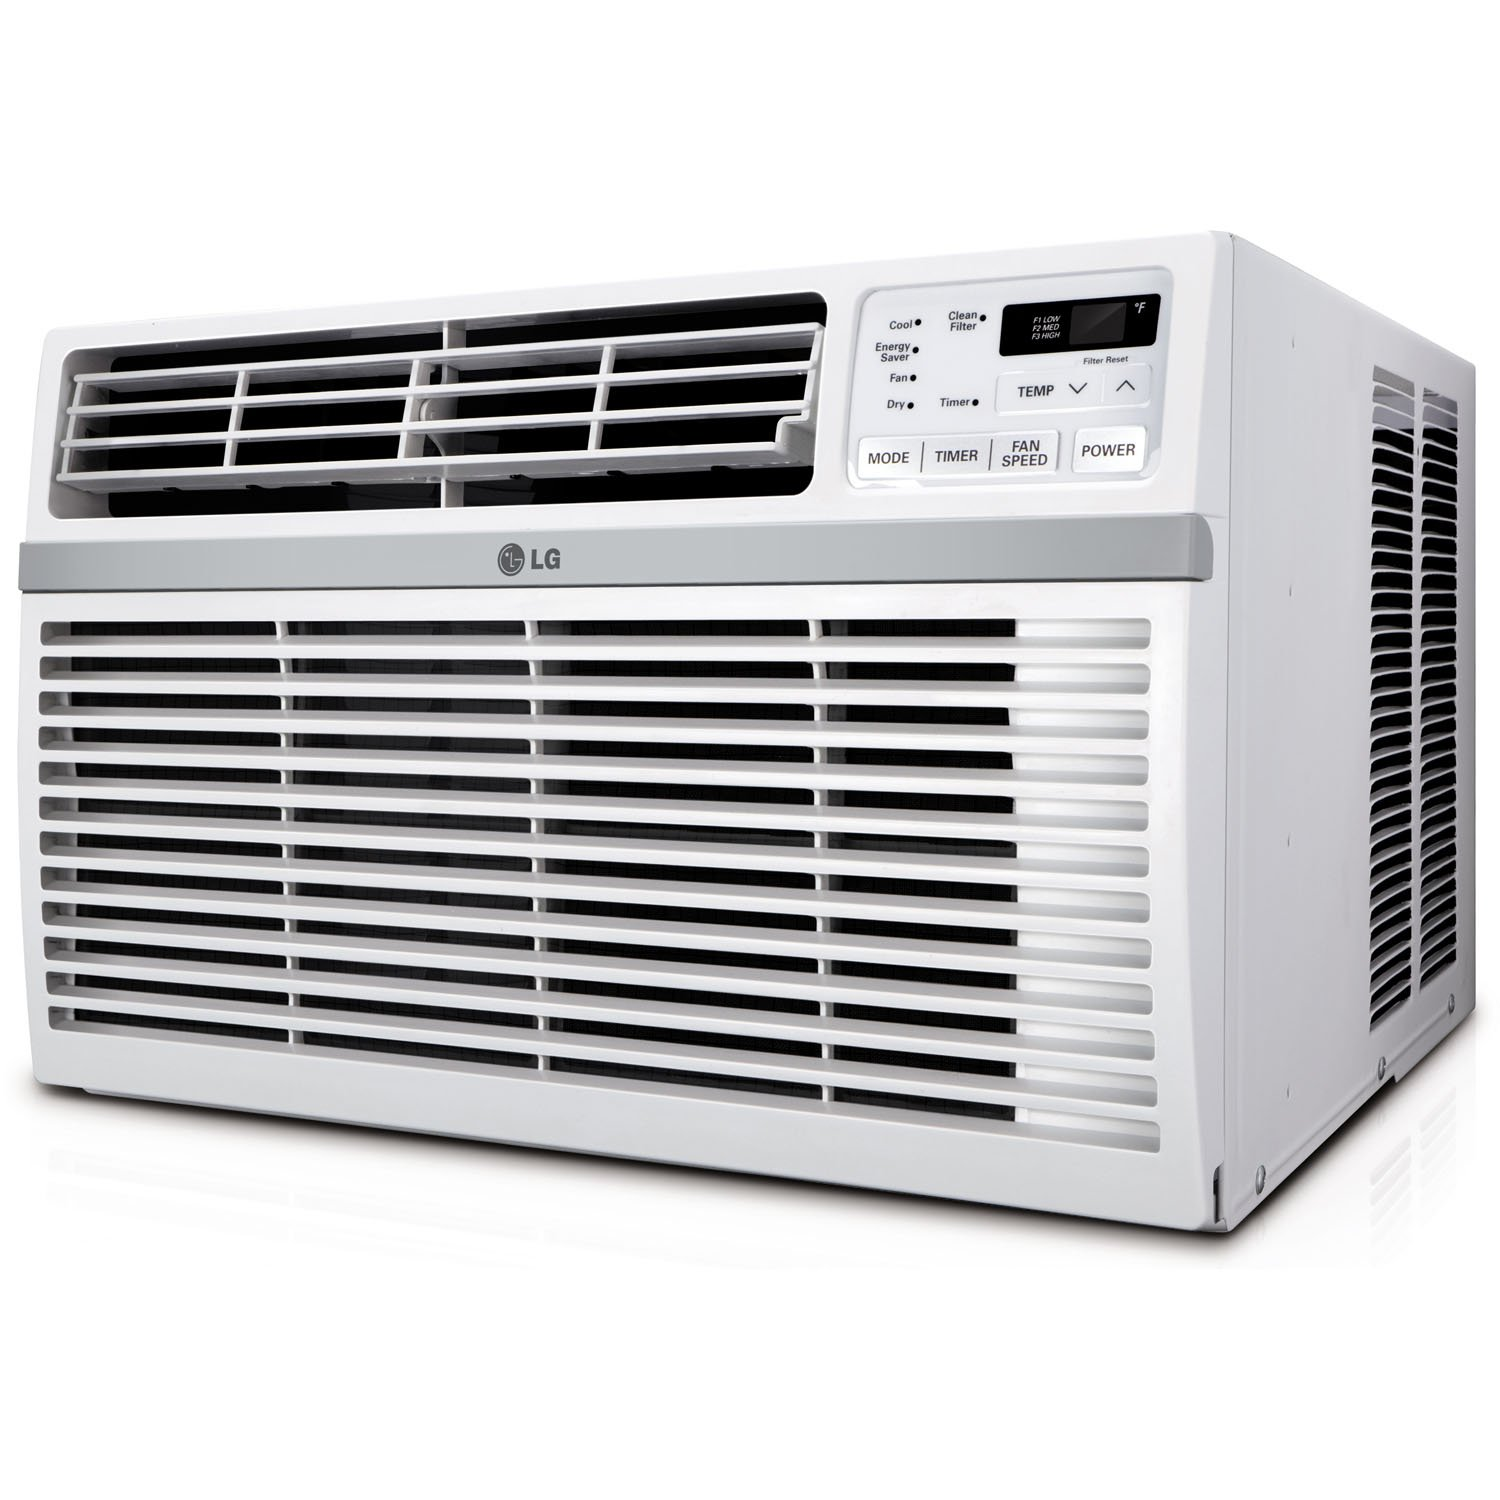 Buzz Blog: Do bees need air conditioners? #61666A